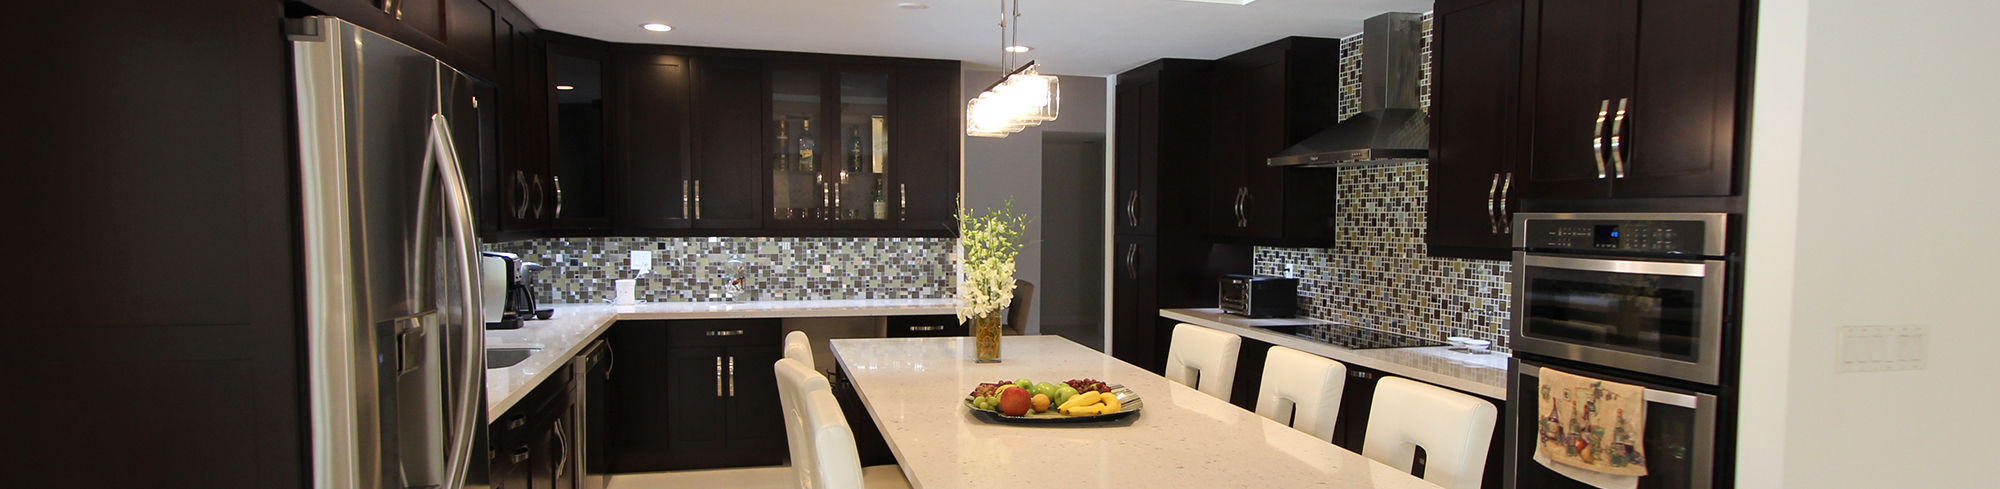 Kitchen Visualizer Visual Kitchen Design Mississauga Cgd Cabinetry